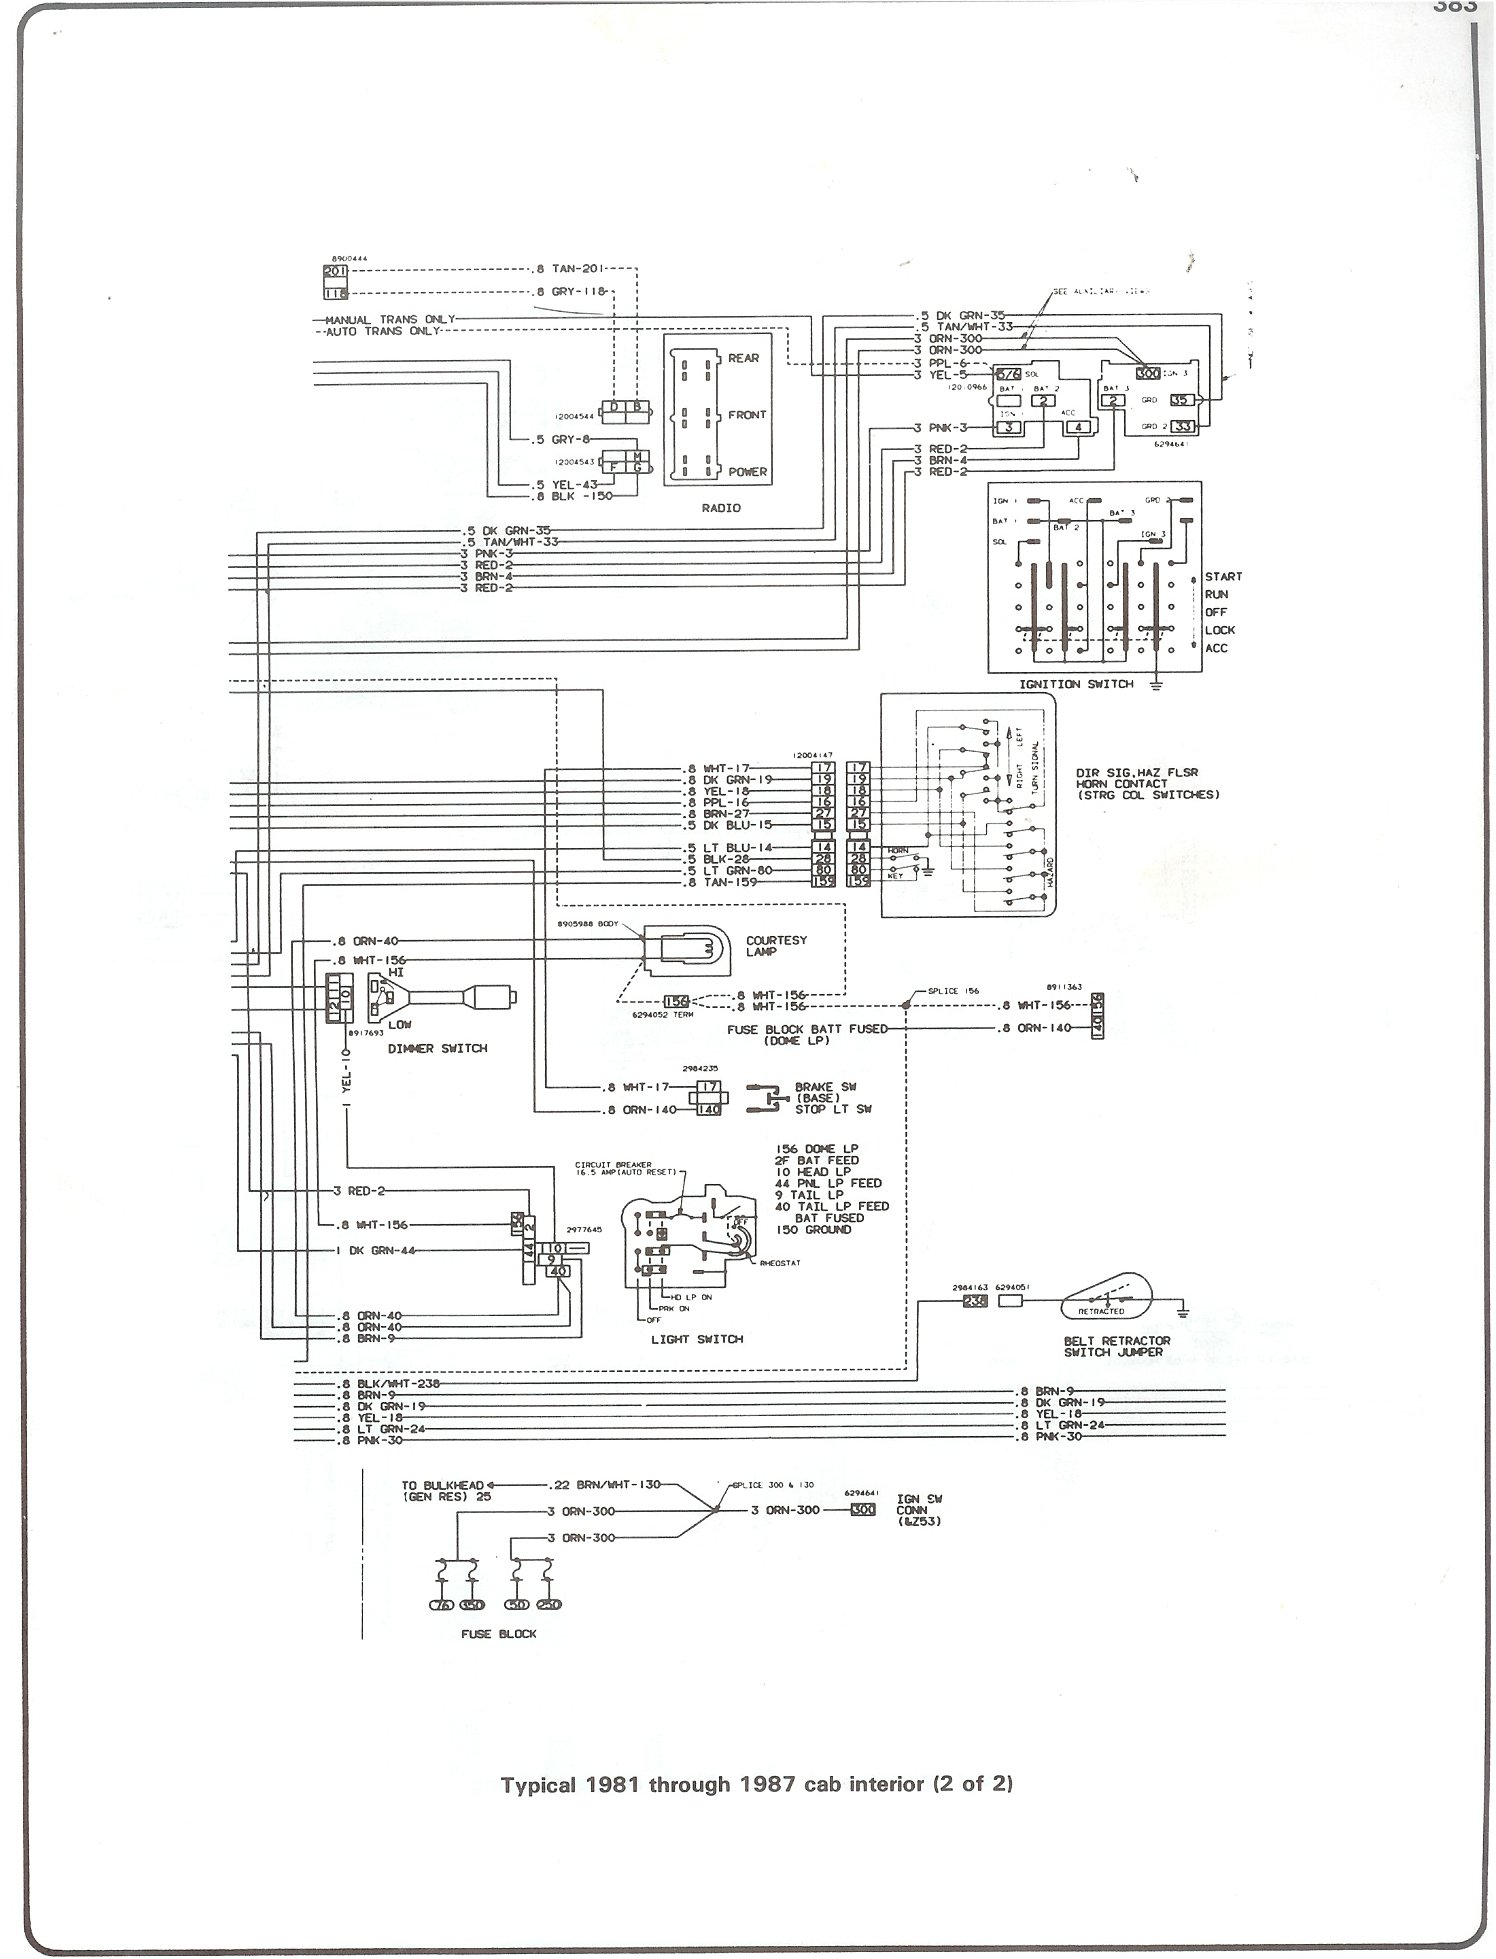 81 87_cab_inter_pg2 complete 73 87 wiring diagrams 1987 chevy truck wiring diagram at crackthecode.co